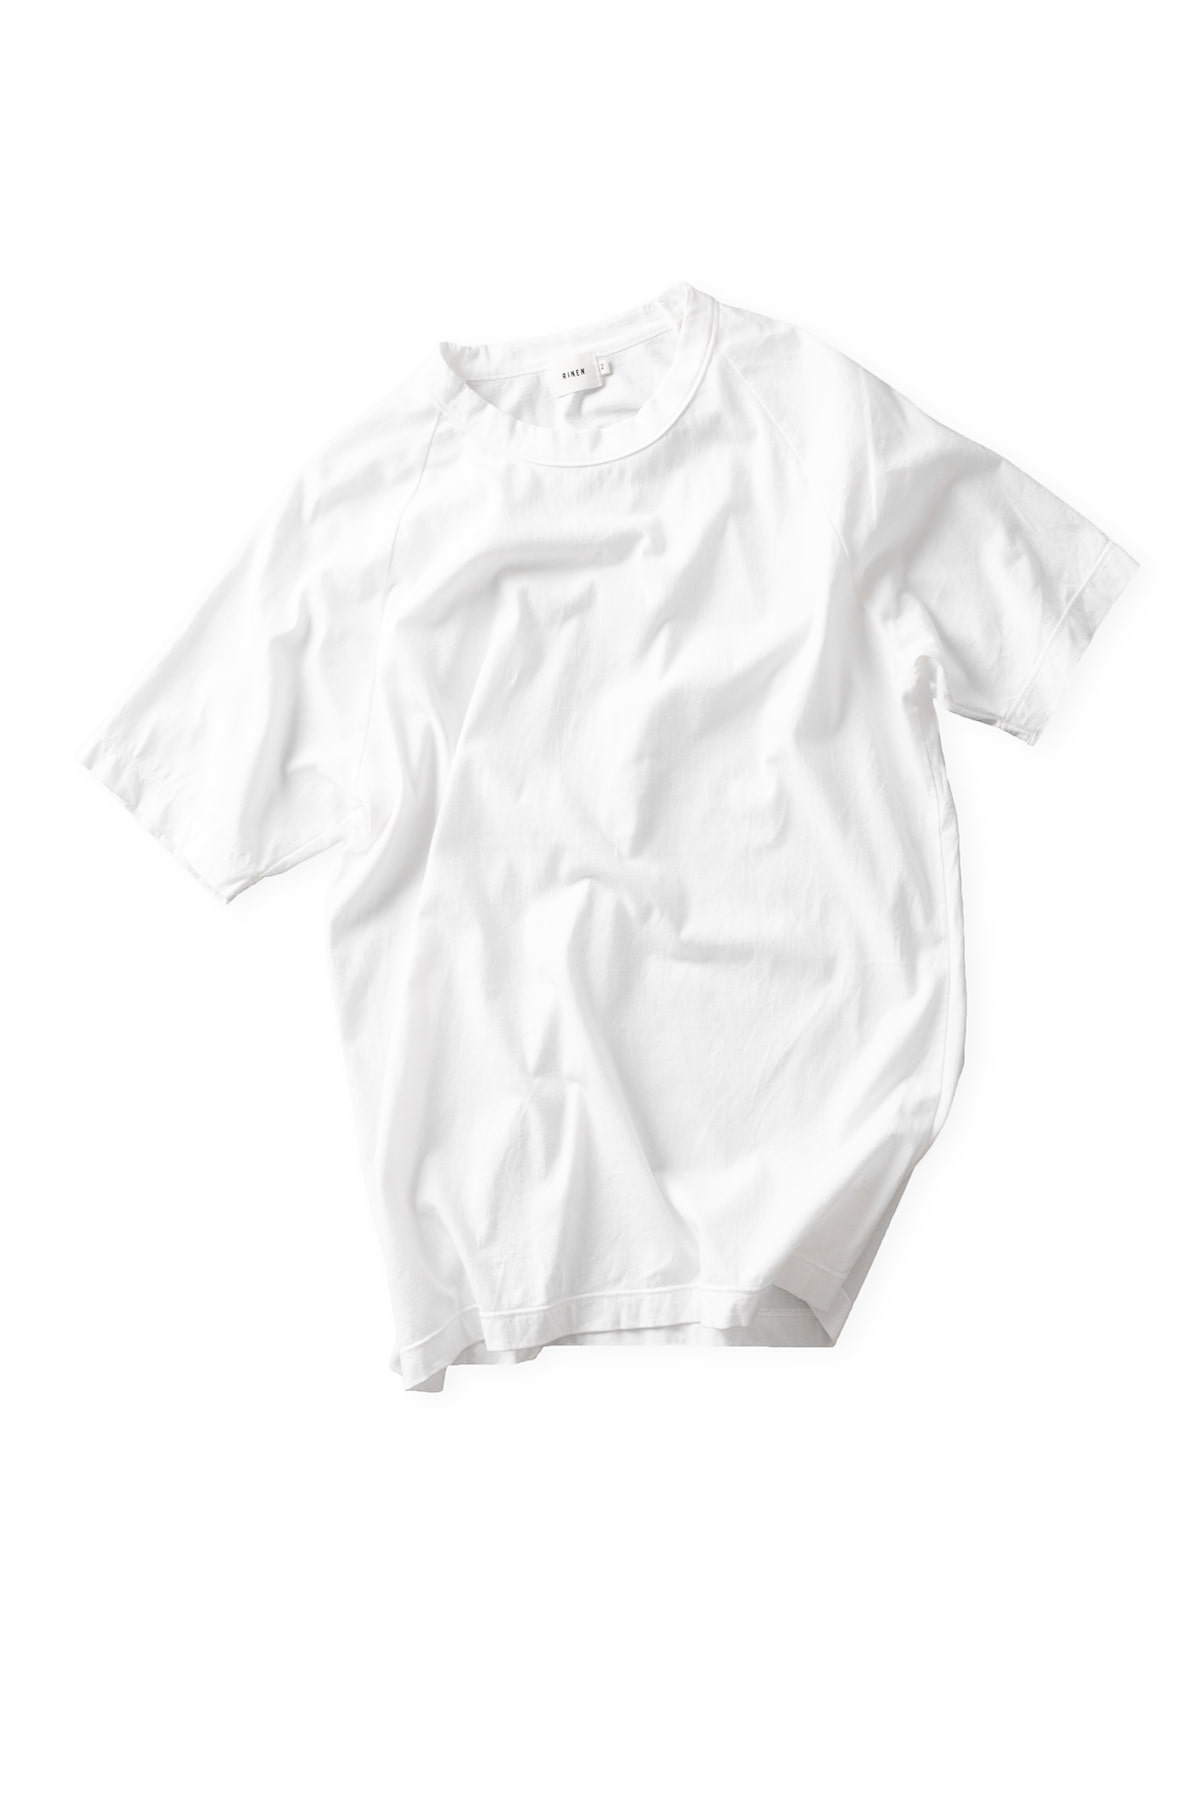 RINEN : Short Sleeved Crewneck 14809 (White)